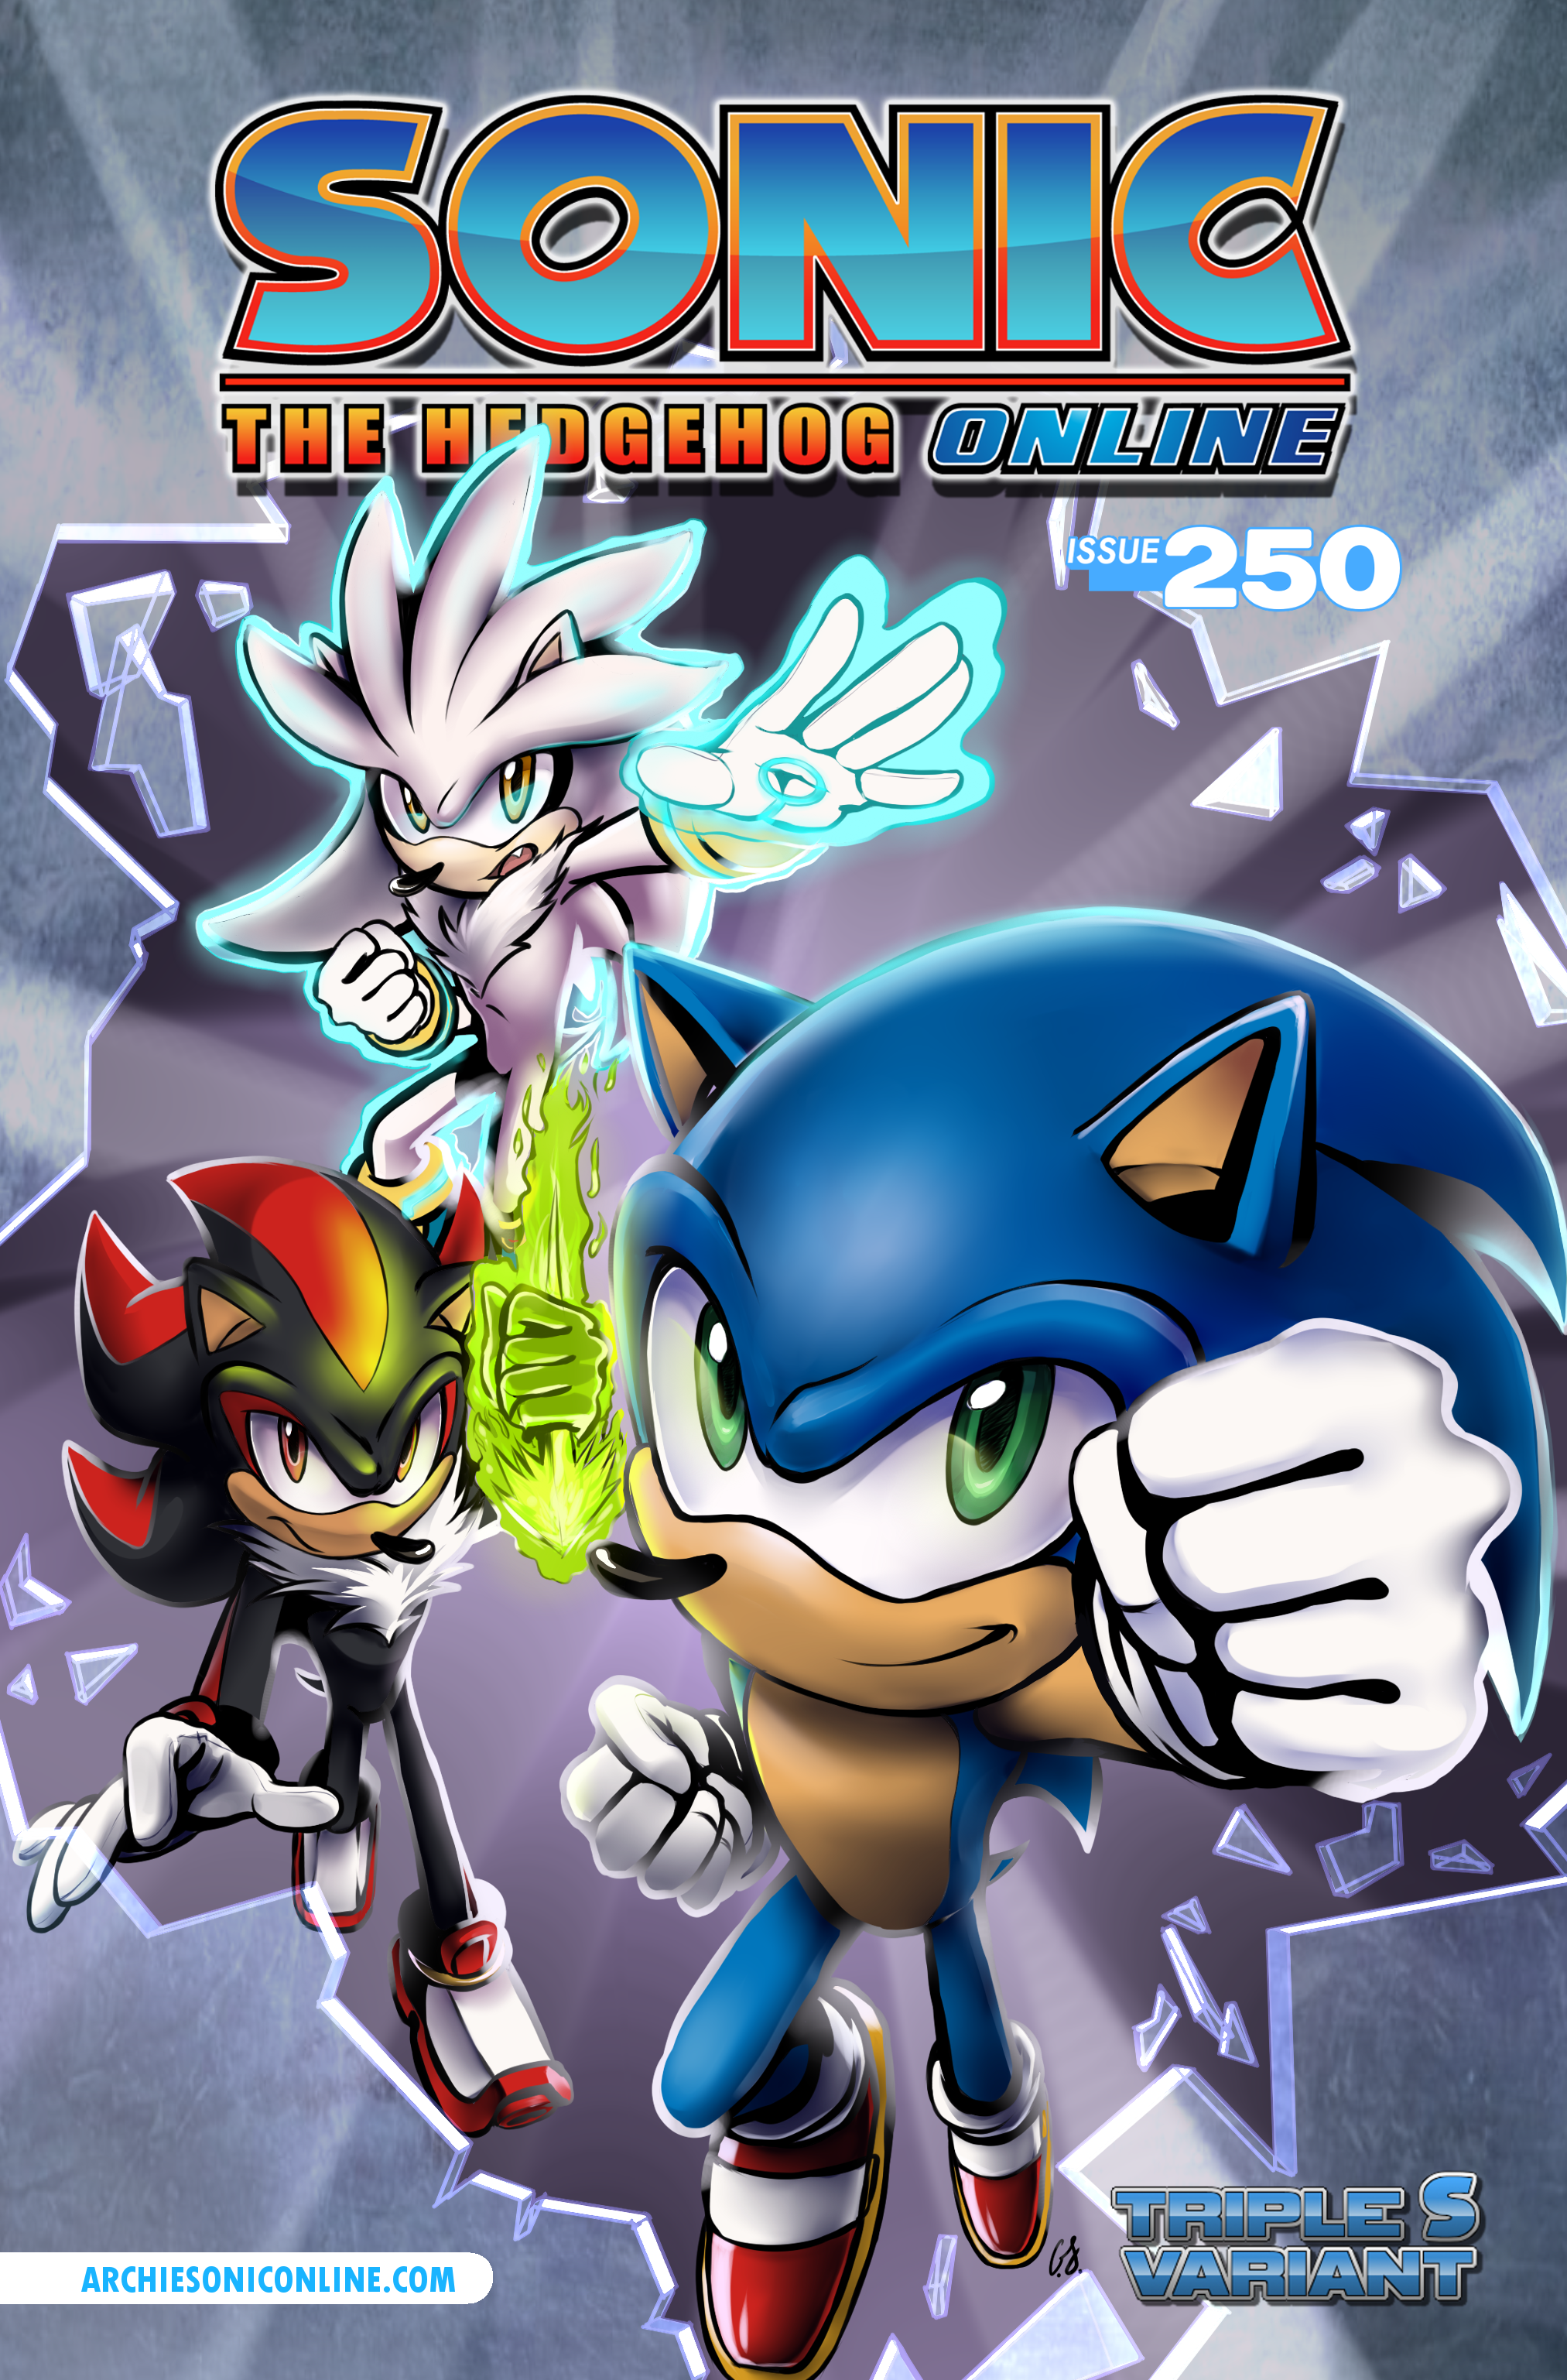 Sonic the Hedgehog Online #250 – Cover B